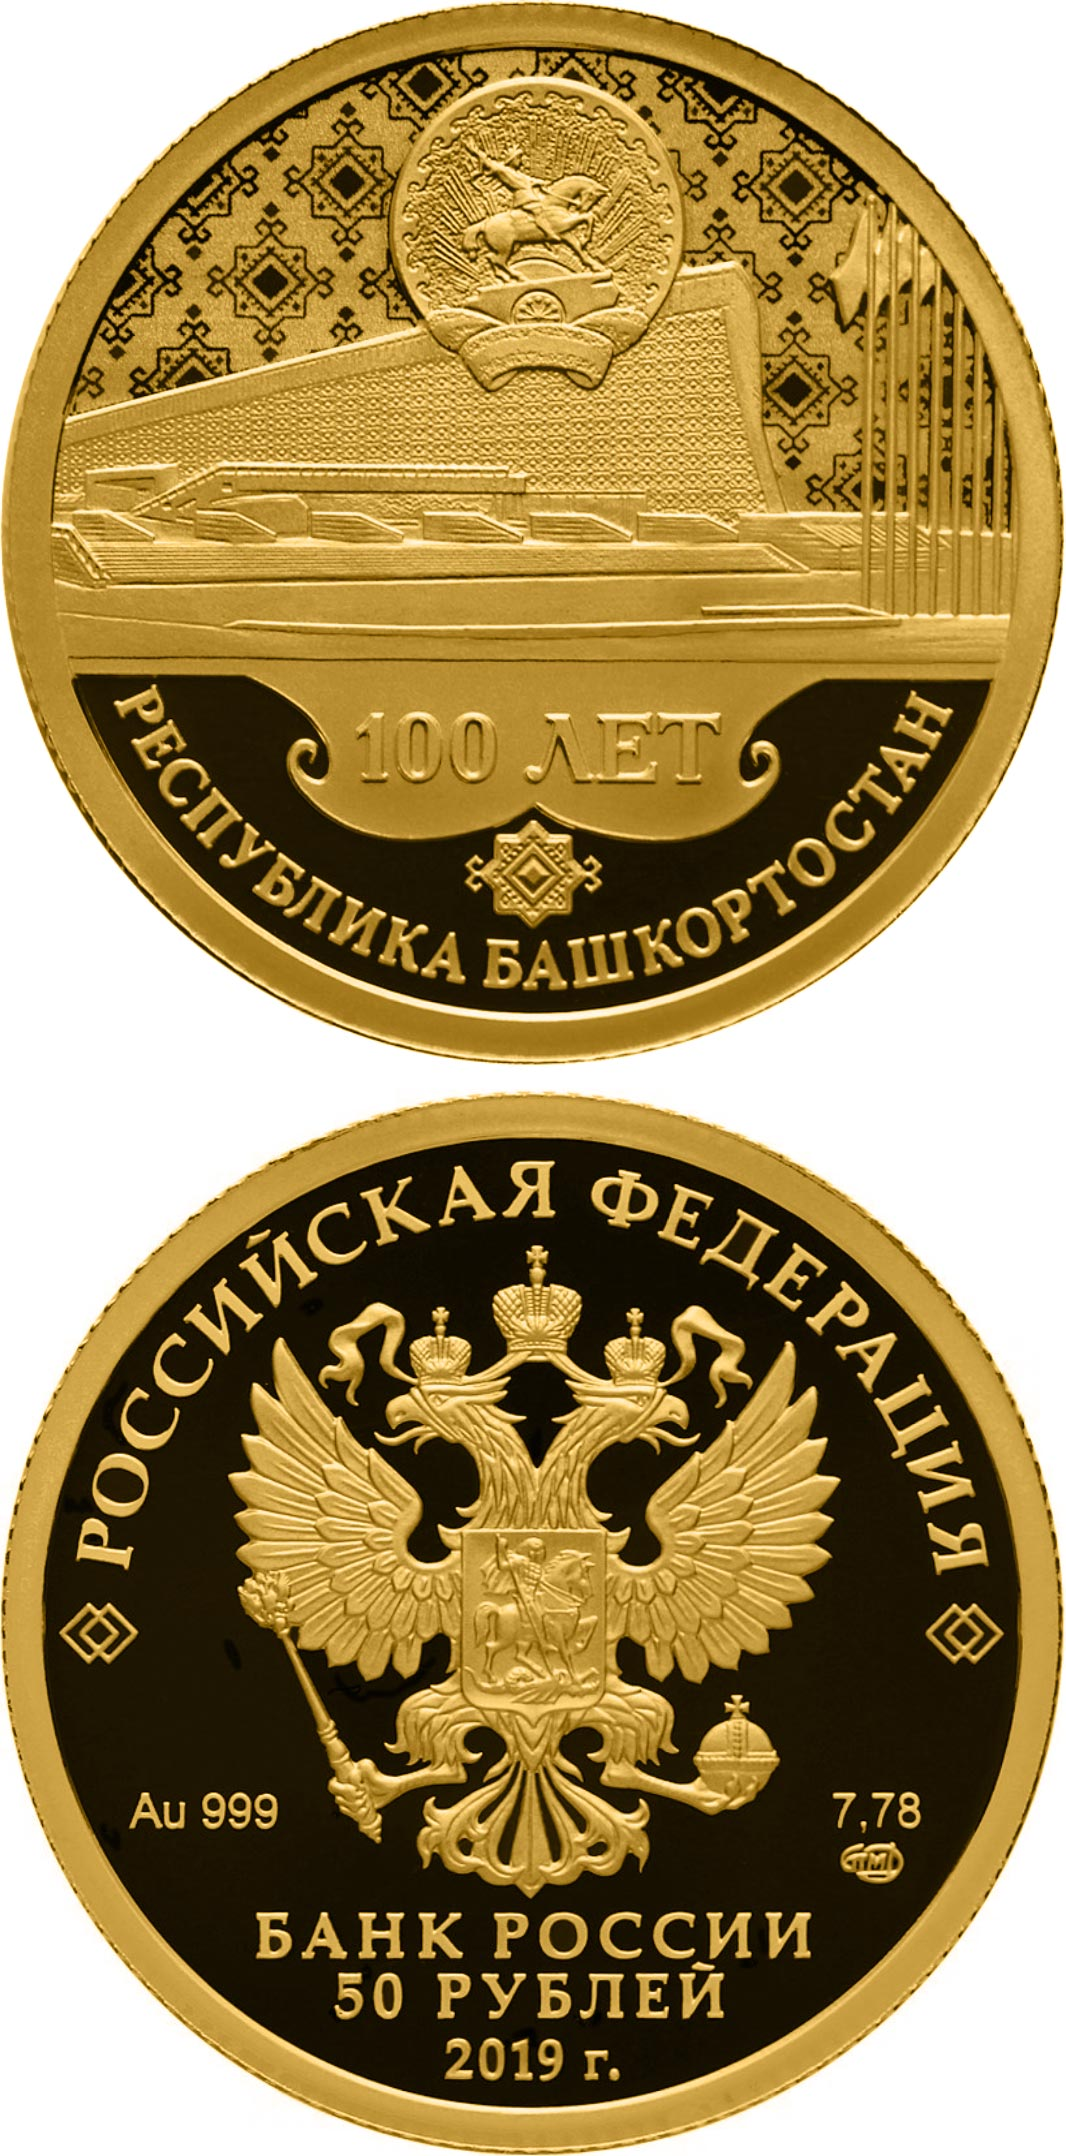 Image of 50 rubles coin – Centenary of the Foundation of the Republic of Bashkortostan | Russia 2019.  The Gold coin is of Proof quality.